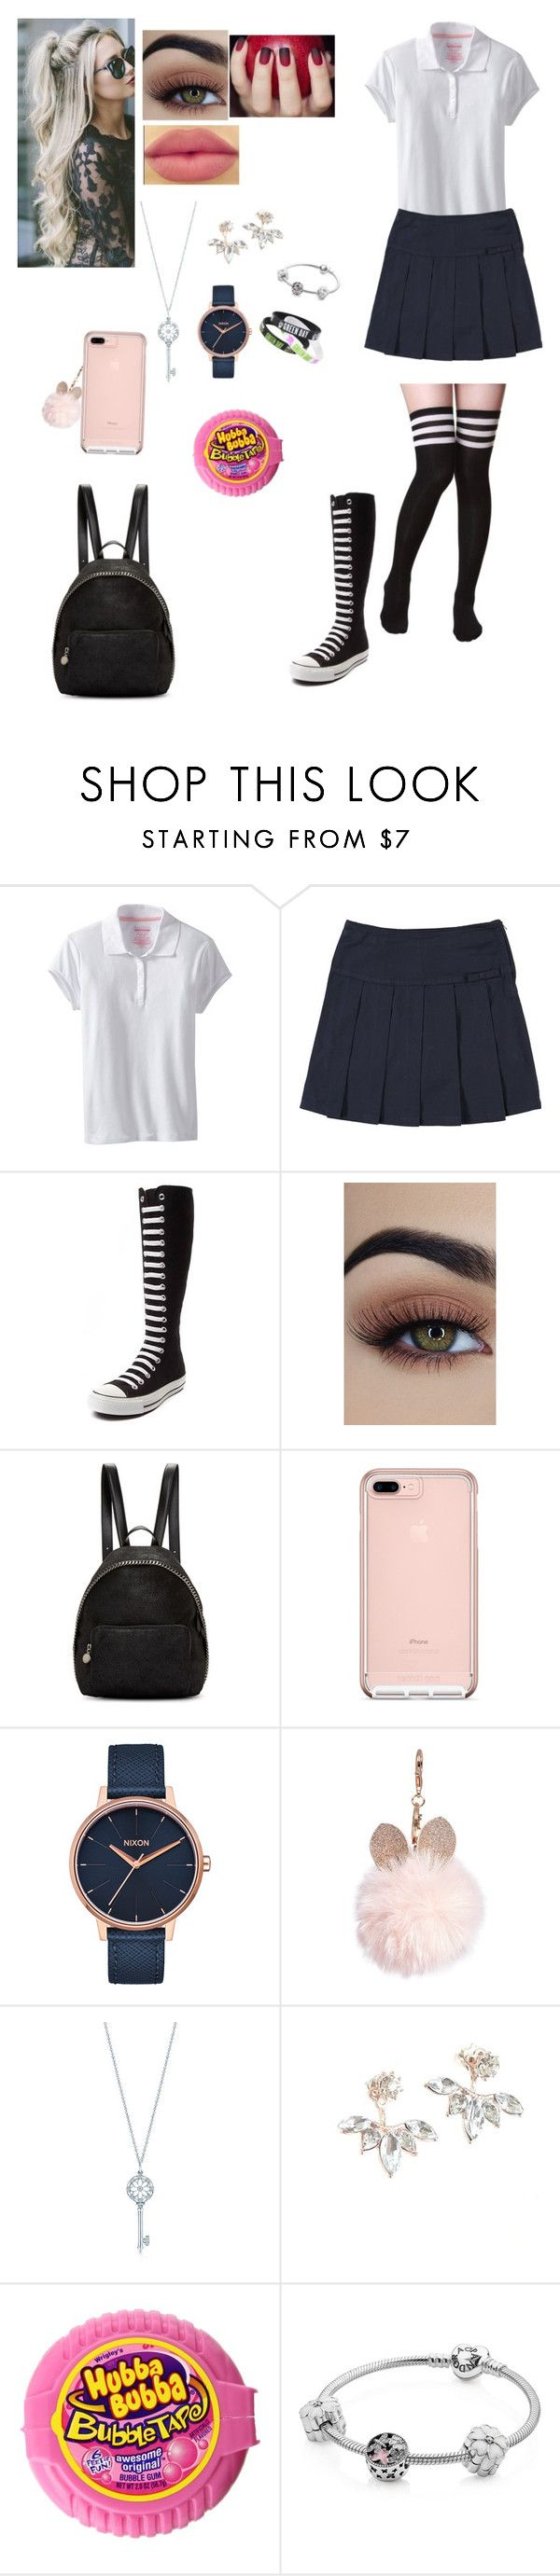 """""""School 🙈"""" by unicornchaby ❤ liked on Polyvore featuring Nautica, French Toast, Converse, tarte, STELLA McCARTNEY, Nixon, GUESS, Tiffany & Co. and Pandora"""